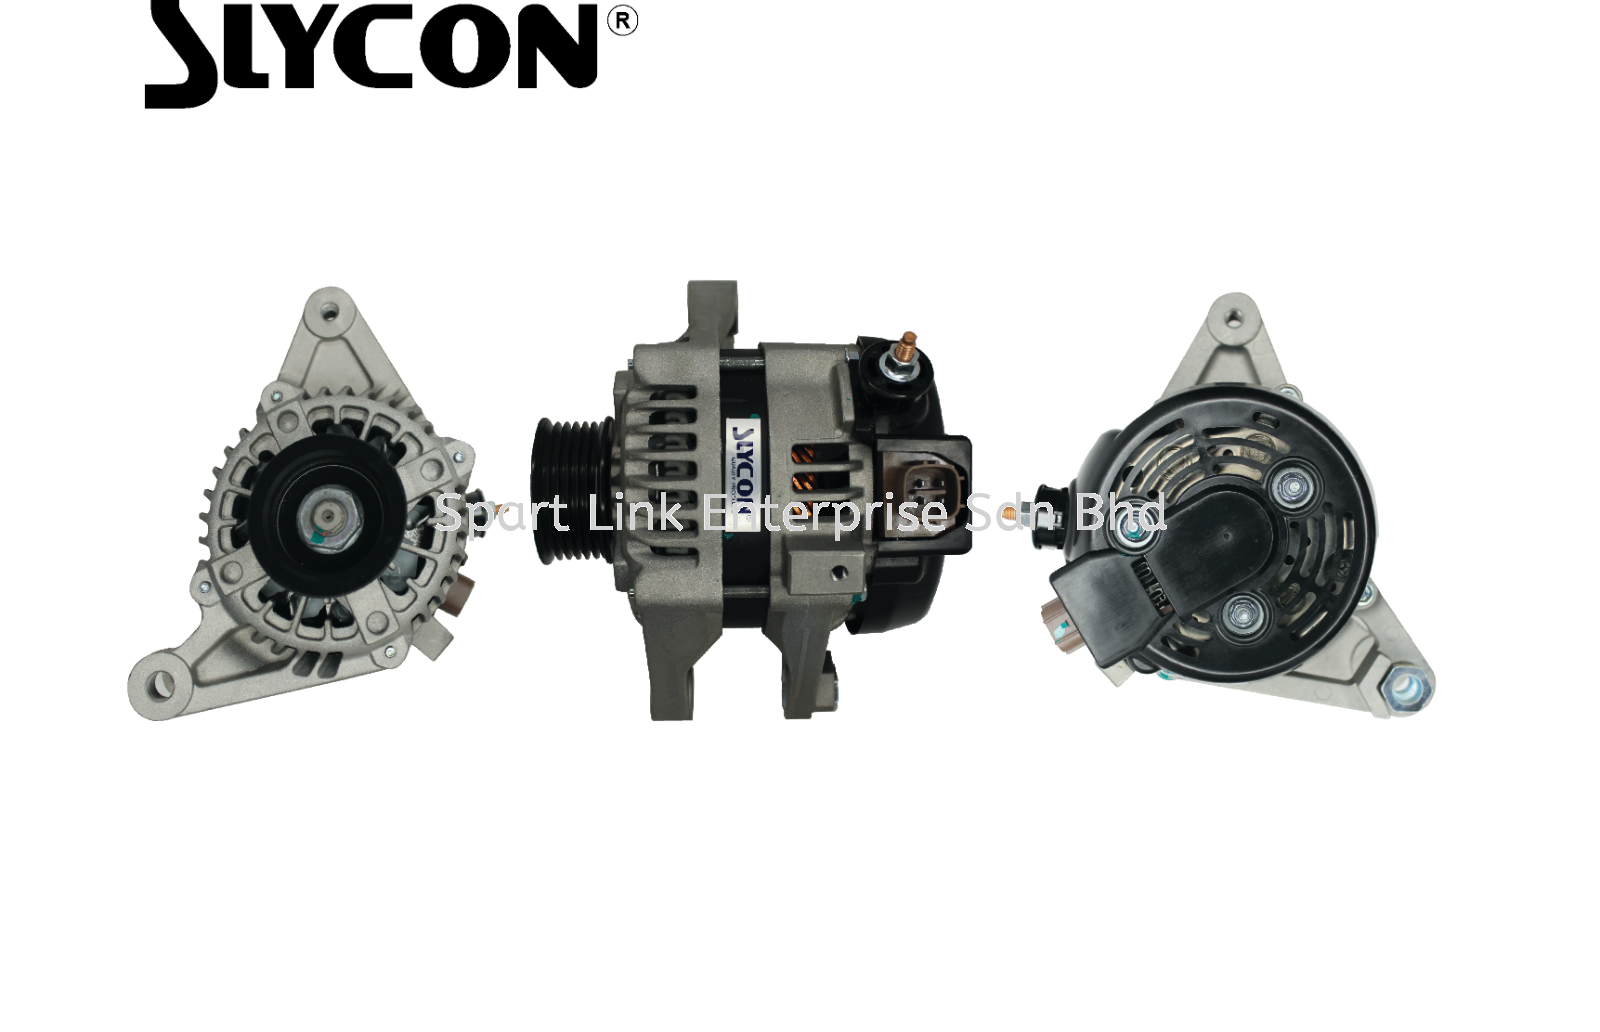 Alternator Toyota Altis 1.8 4Pin 85A